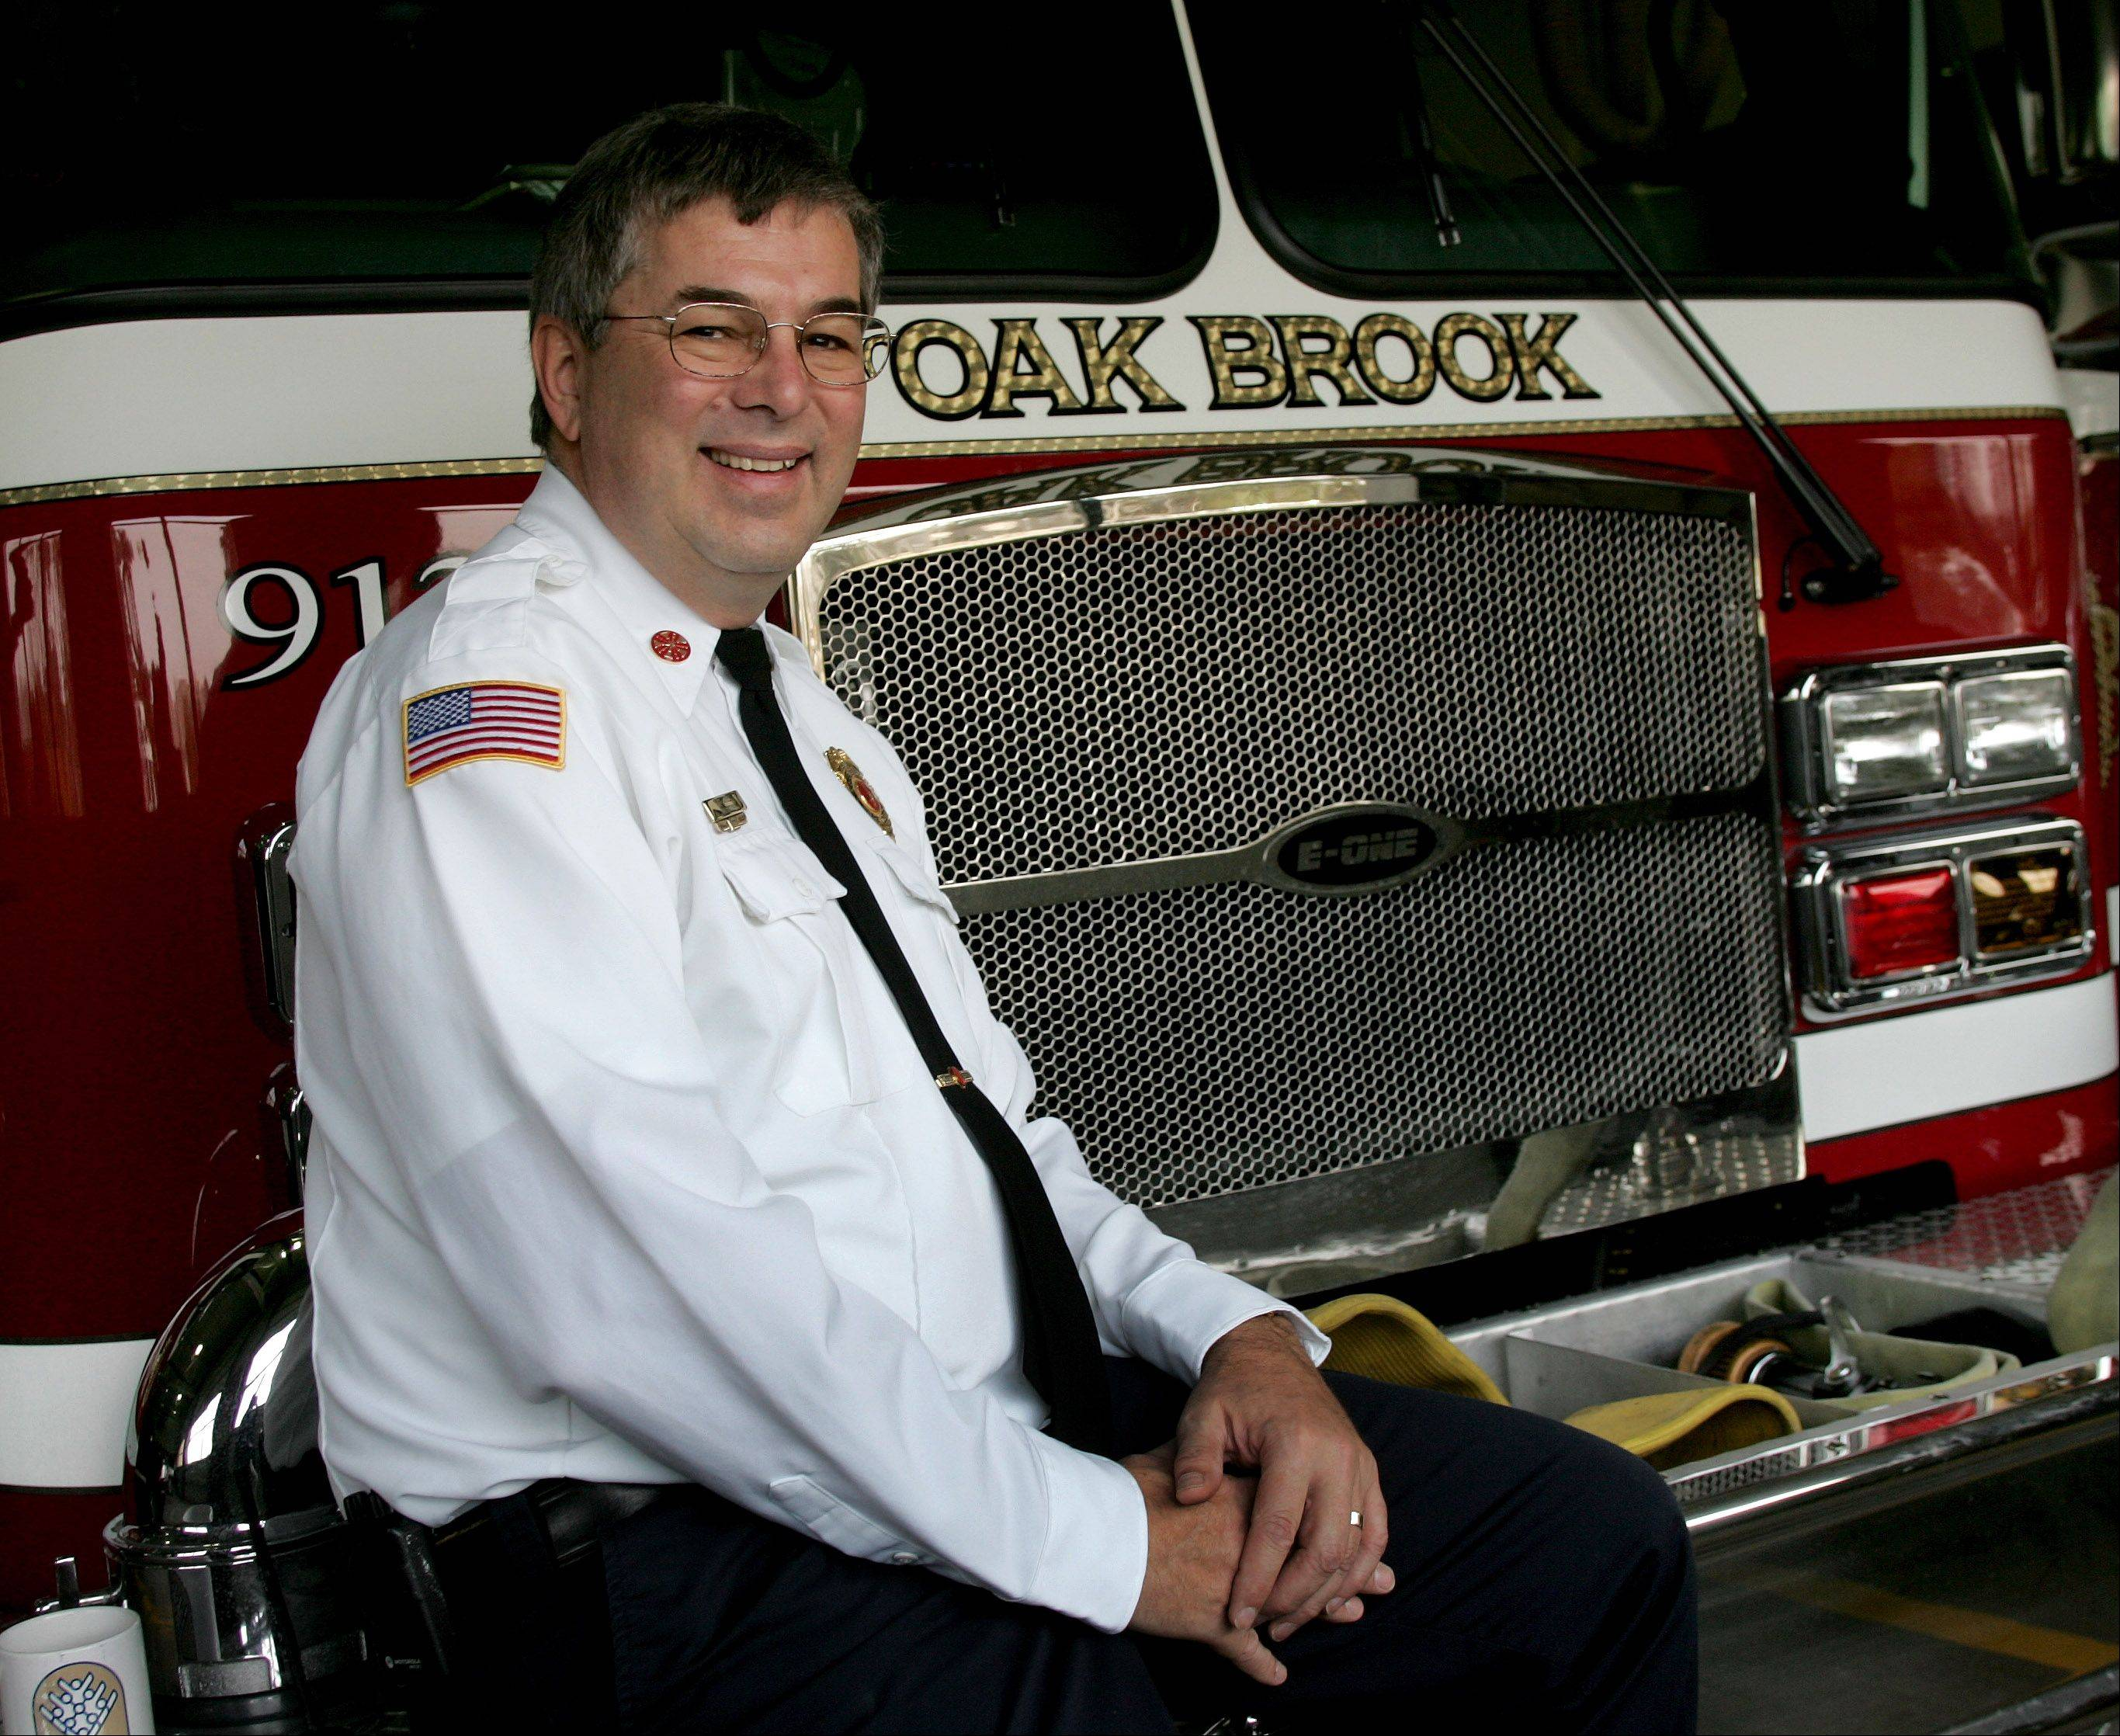 James Bodony, seen here before retiring from the Oak Brook Fire Department, will lead the Glen Ellyn Volunteer Fire Company until April 2014.